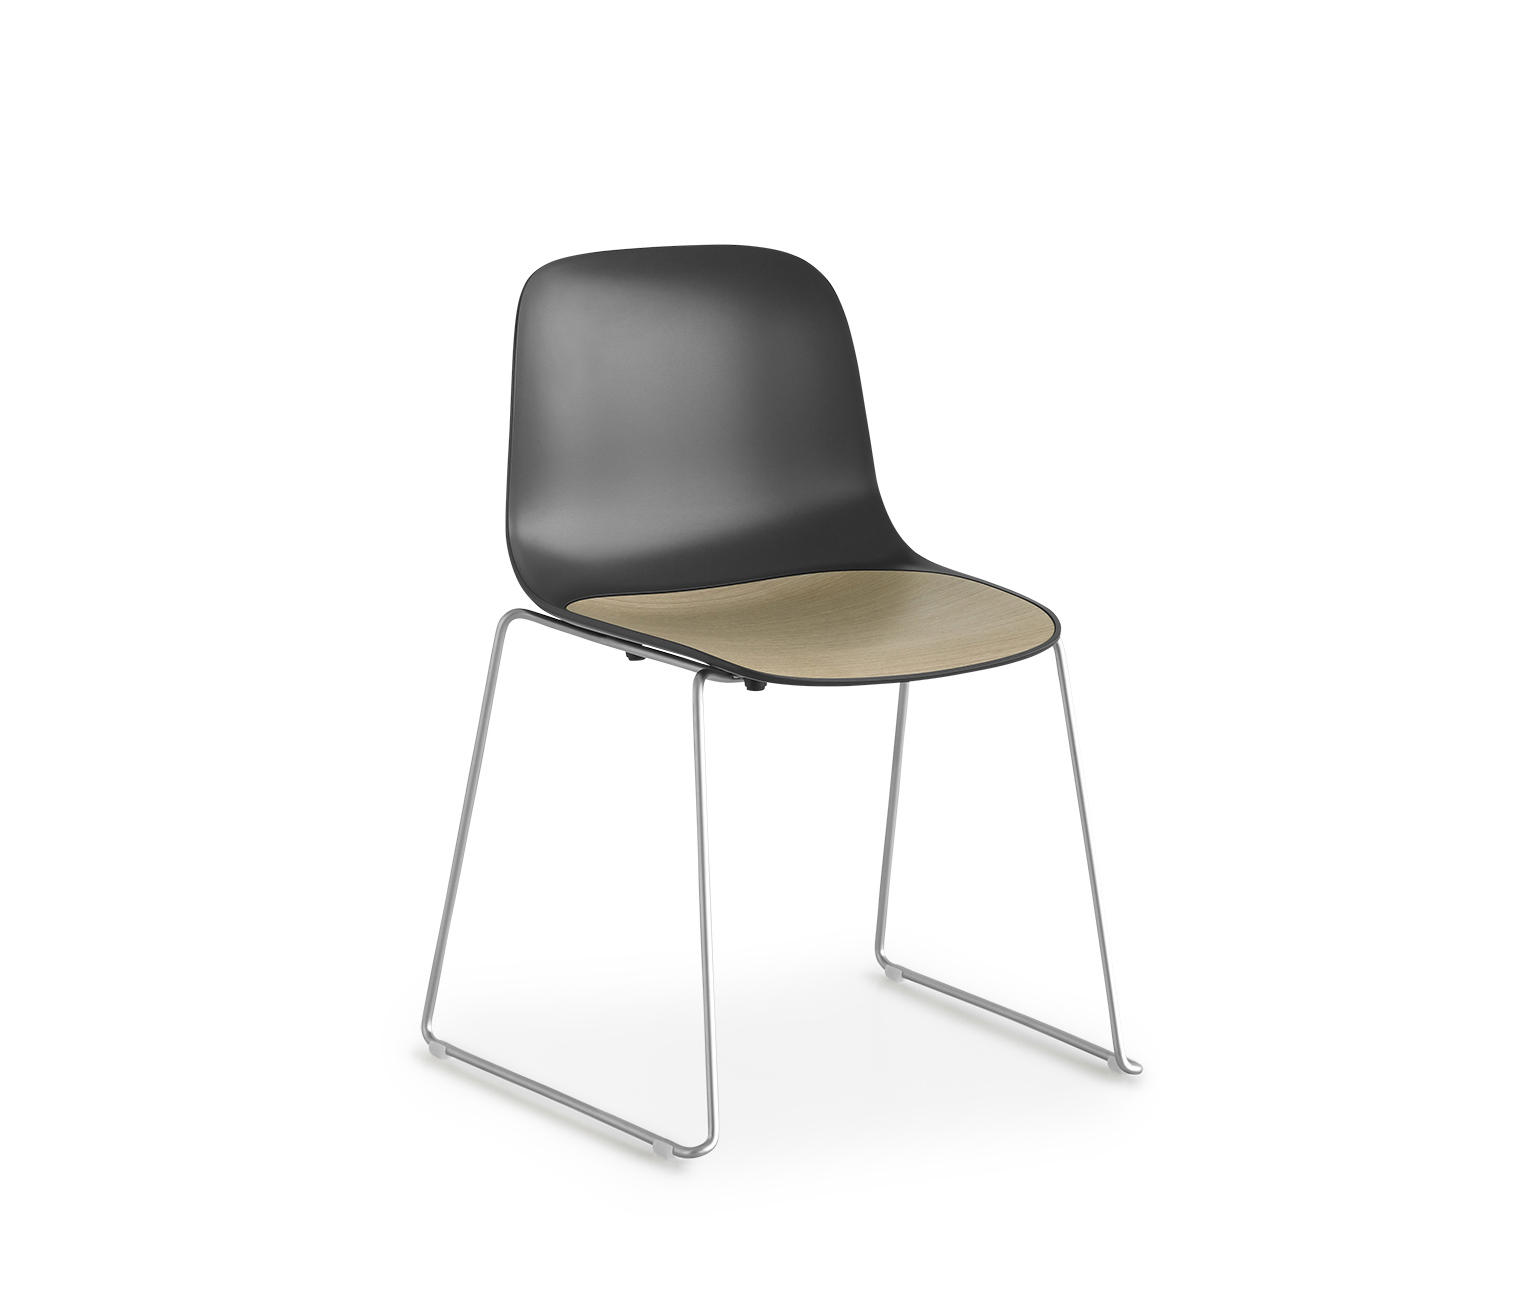 S310 By Lapalma | Chairs ...